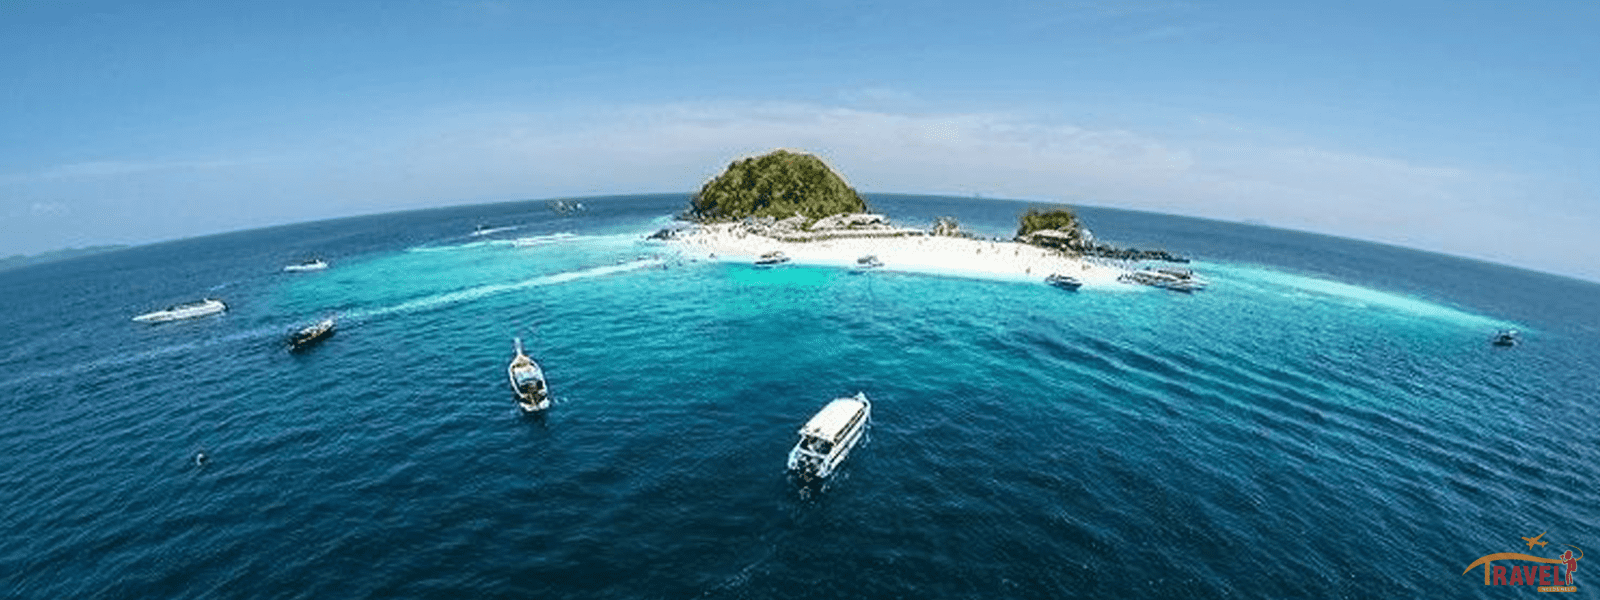 3 khai island half tour(Morning Tour/Afternoon Tour) - Tour